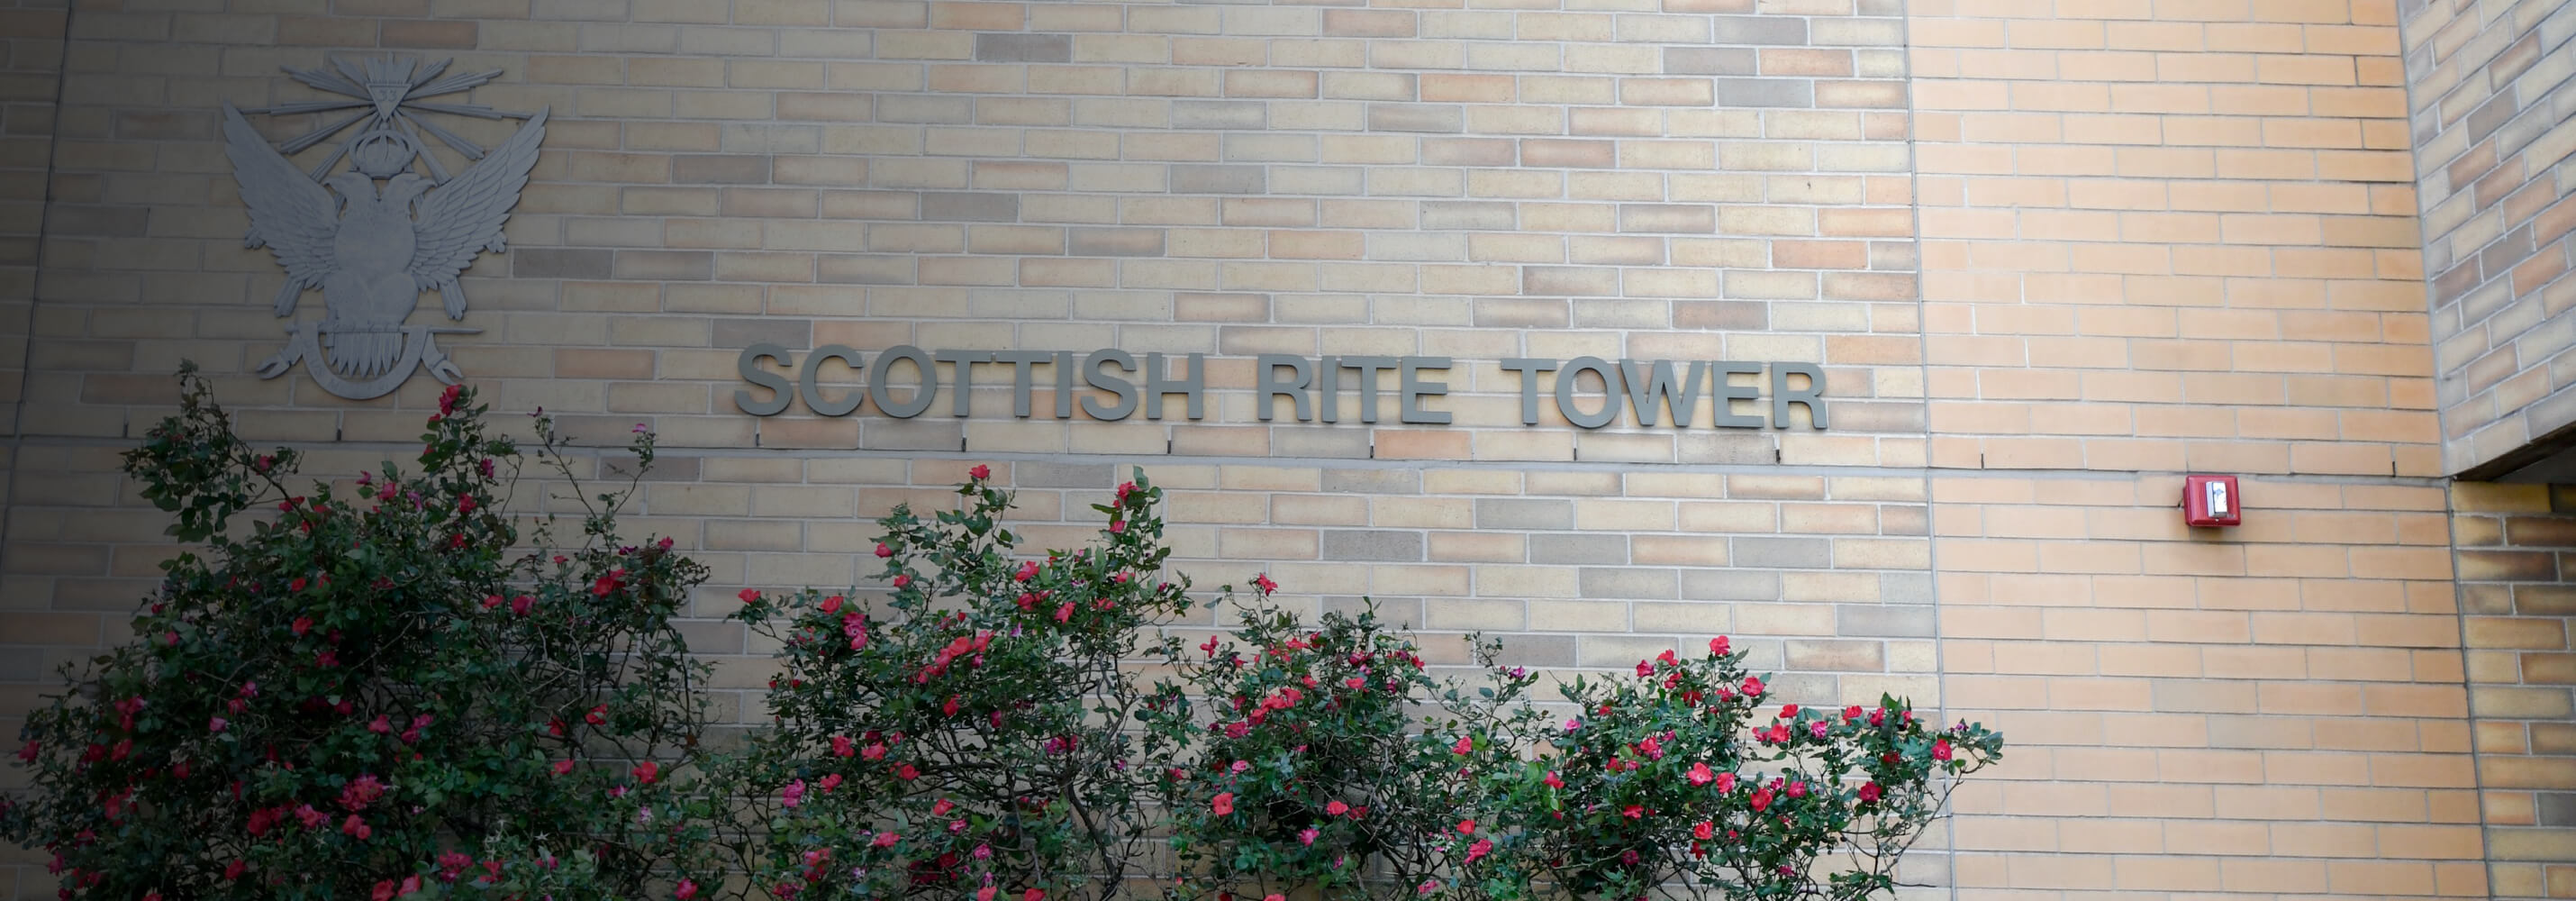 Scottish Rite Tower